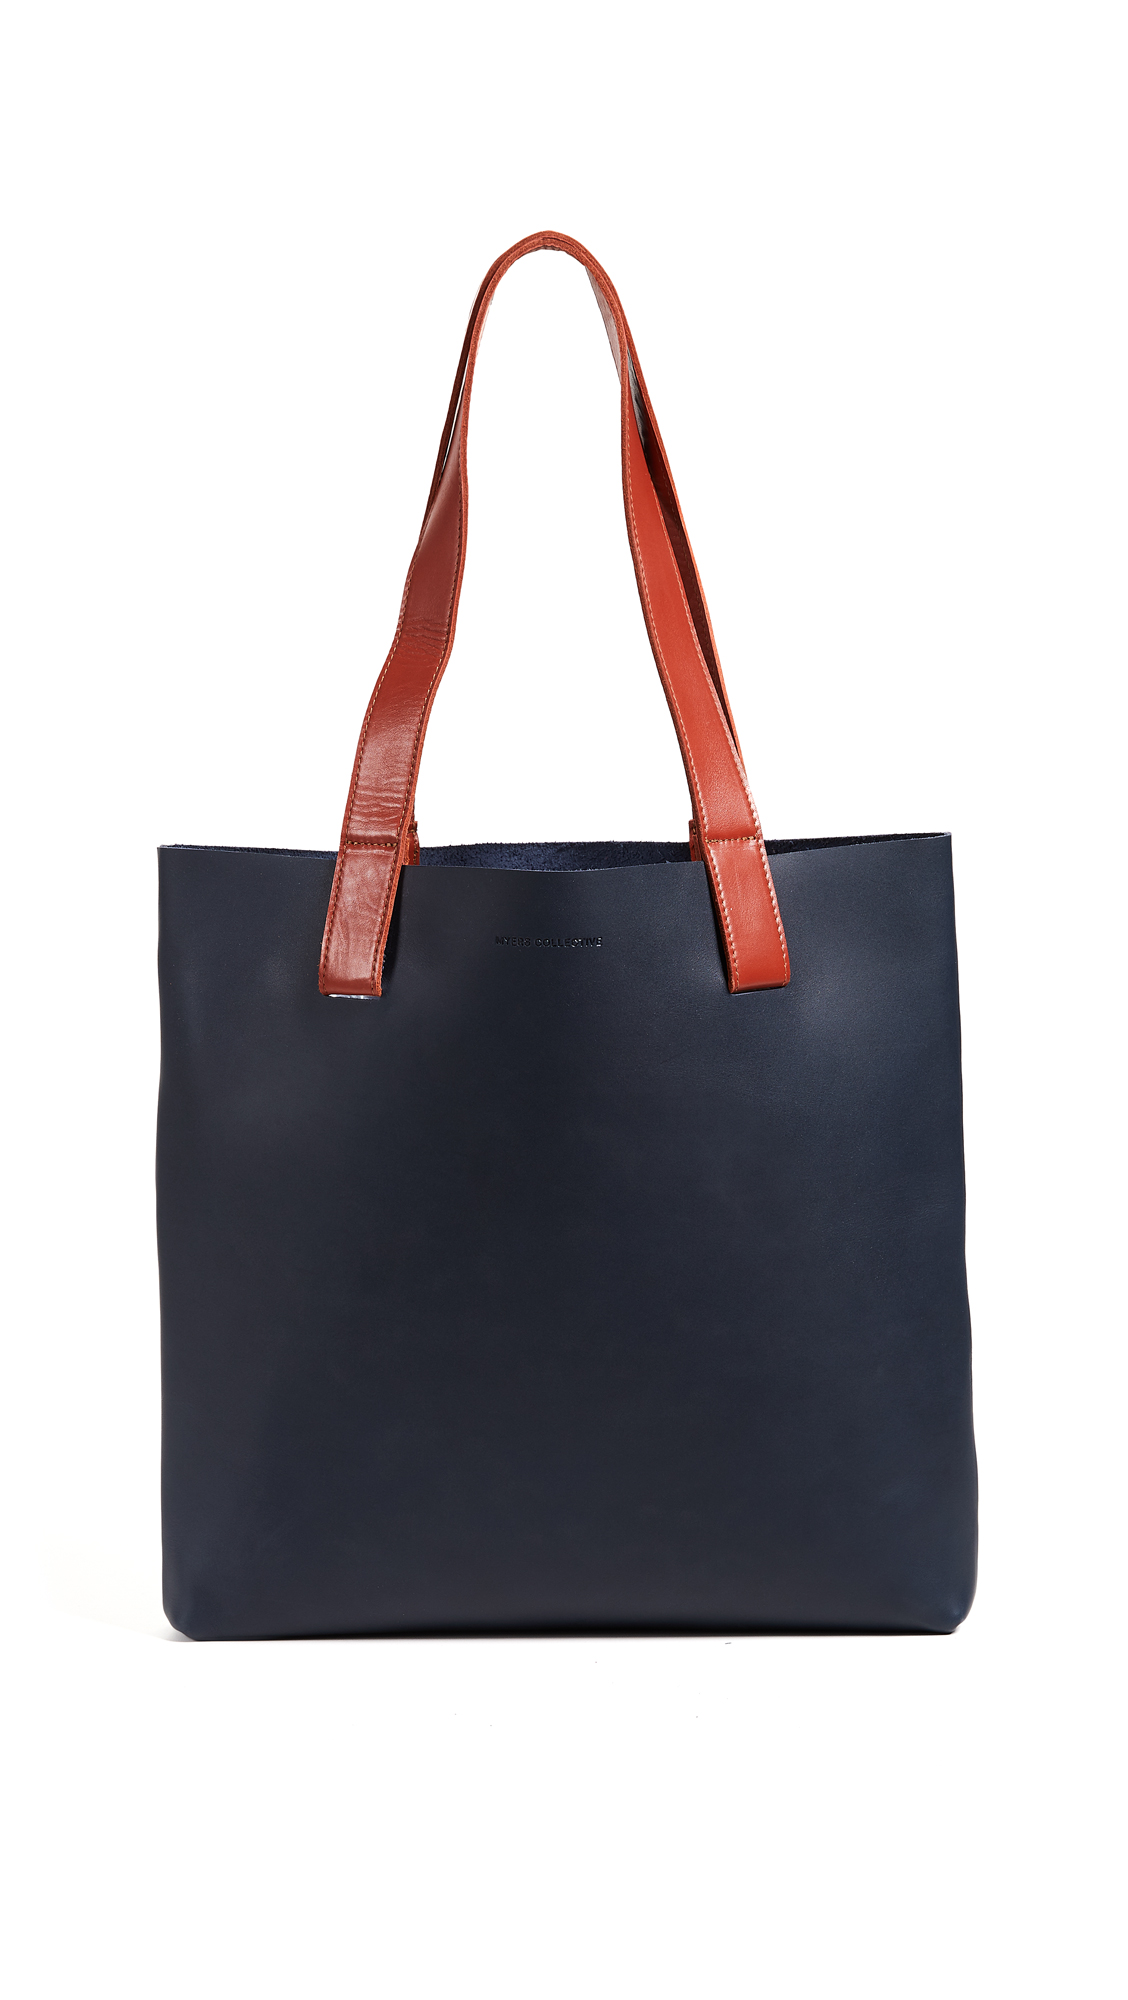 OTAAT/MYERS COLLECTIVE SQUARE TOTE BAG